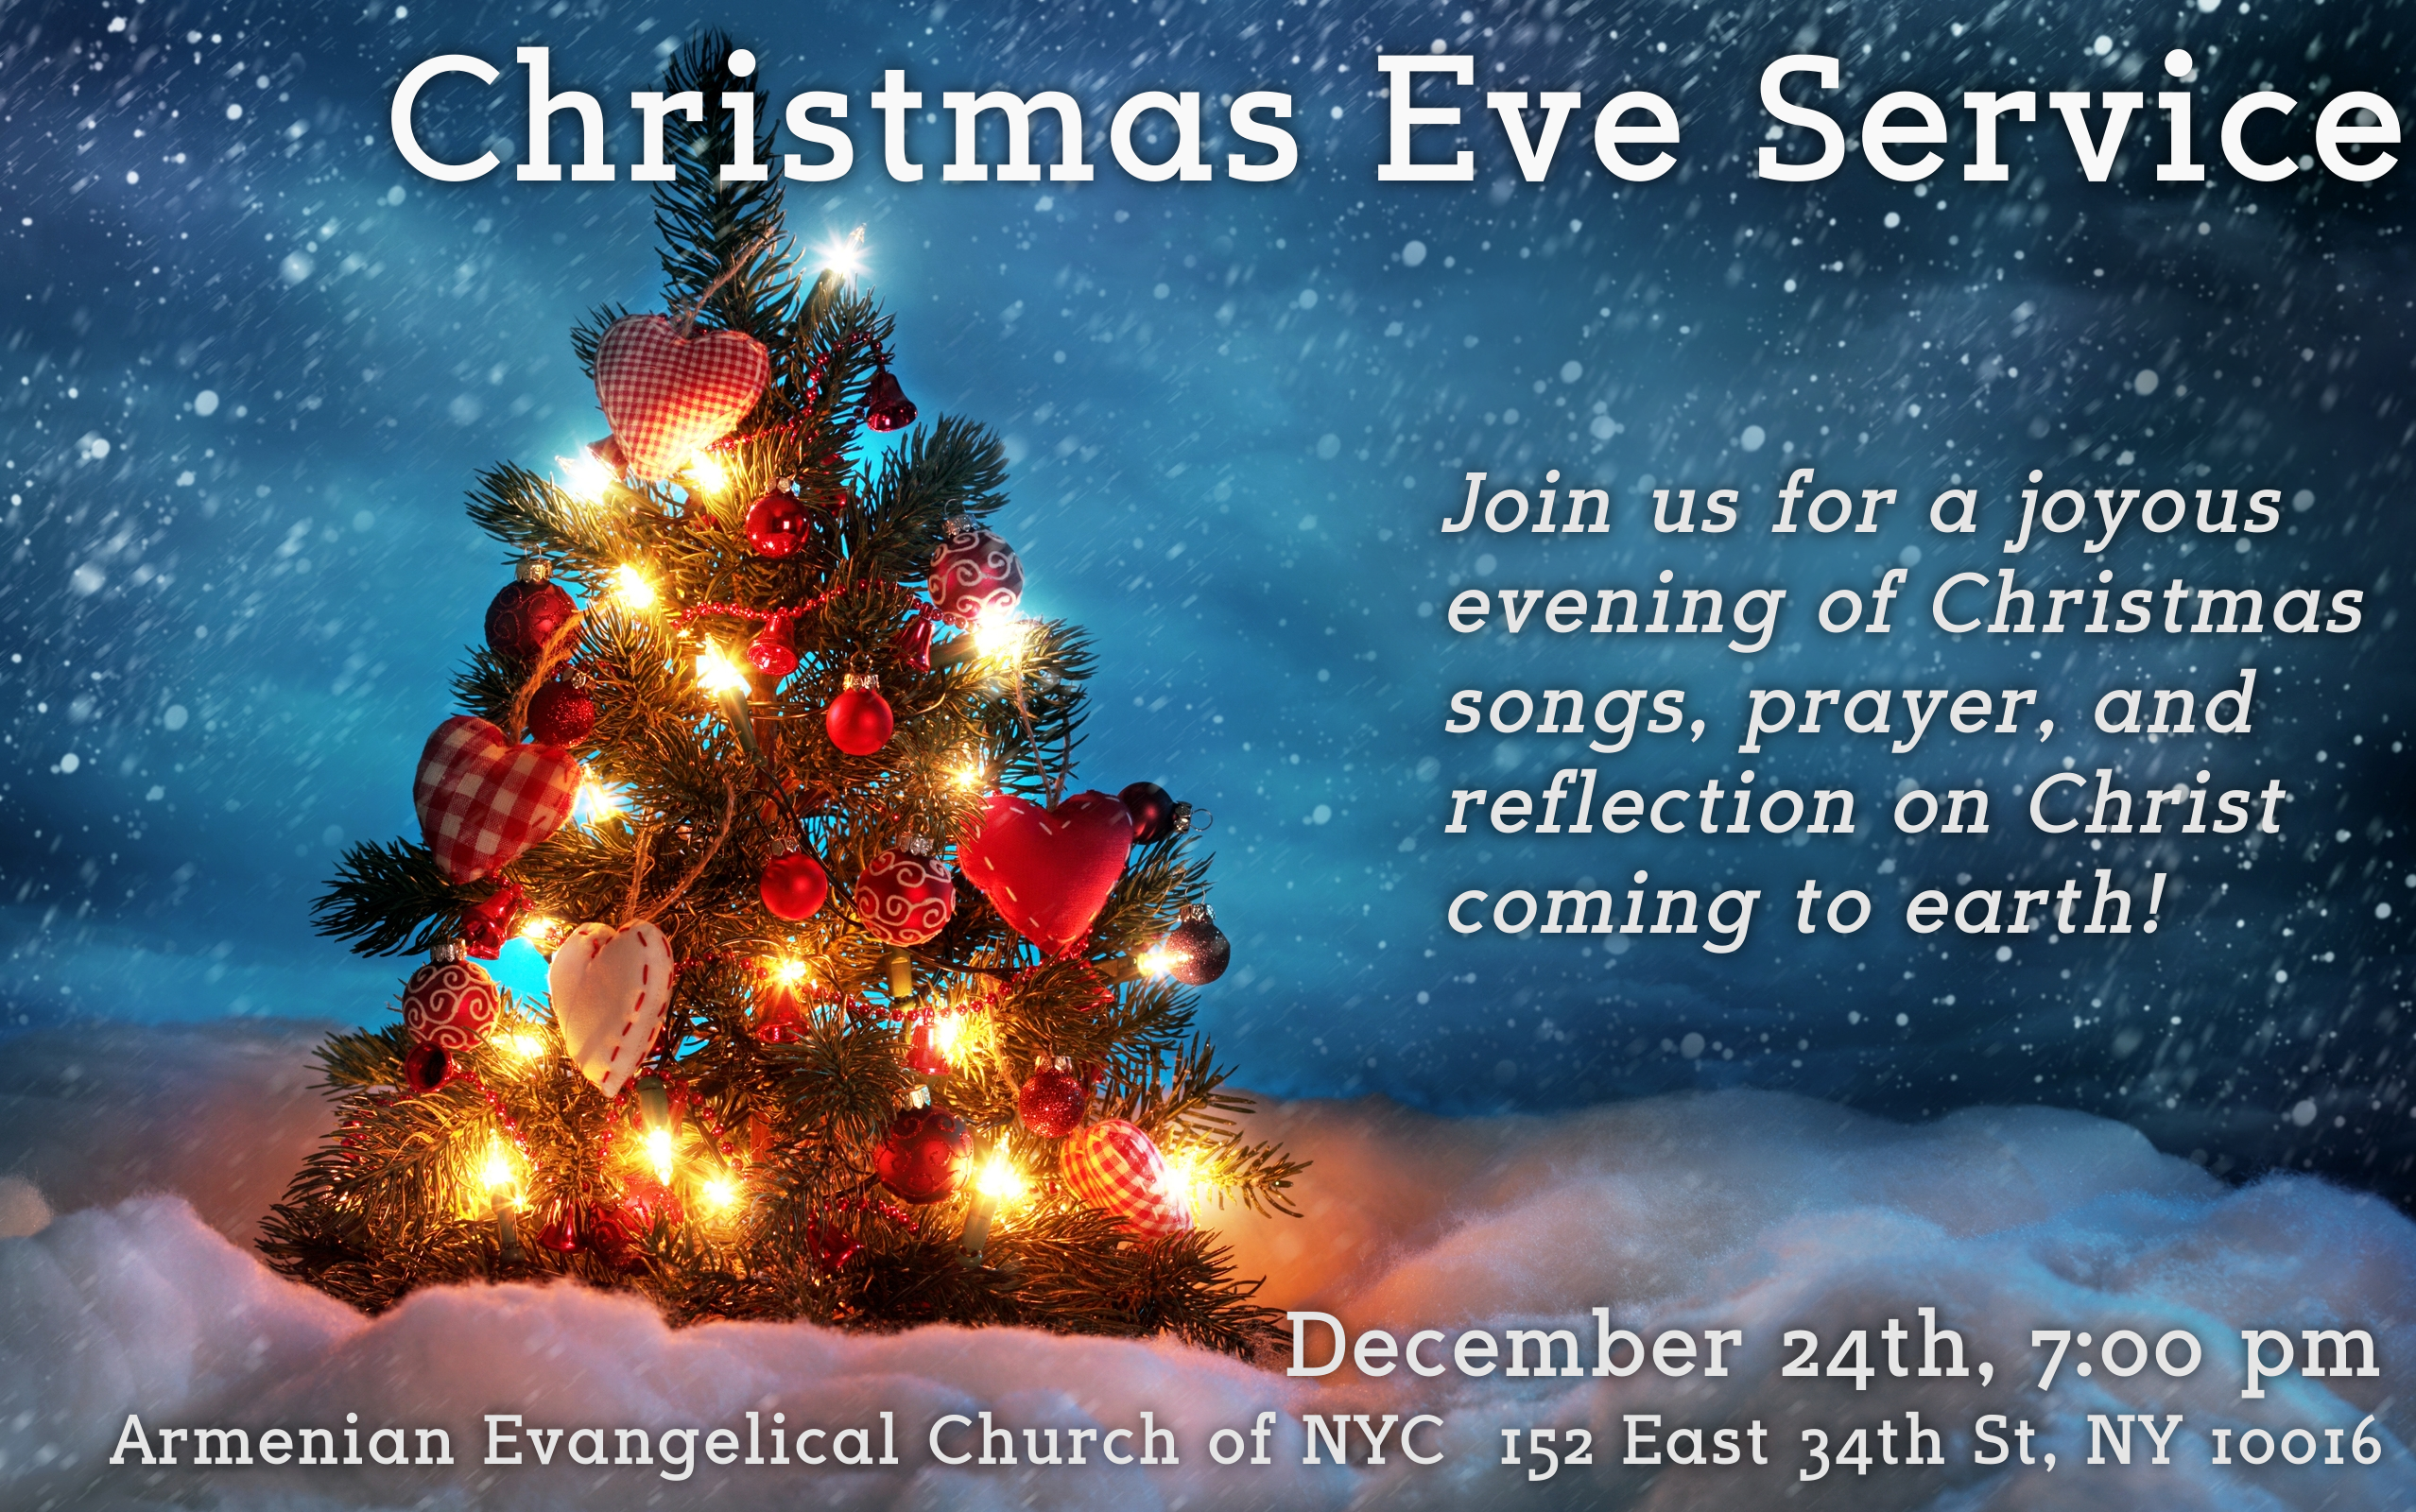 The Armenian Evangelical Church of NY – Christmas Eve Service